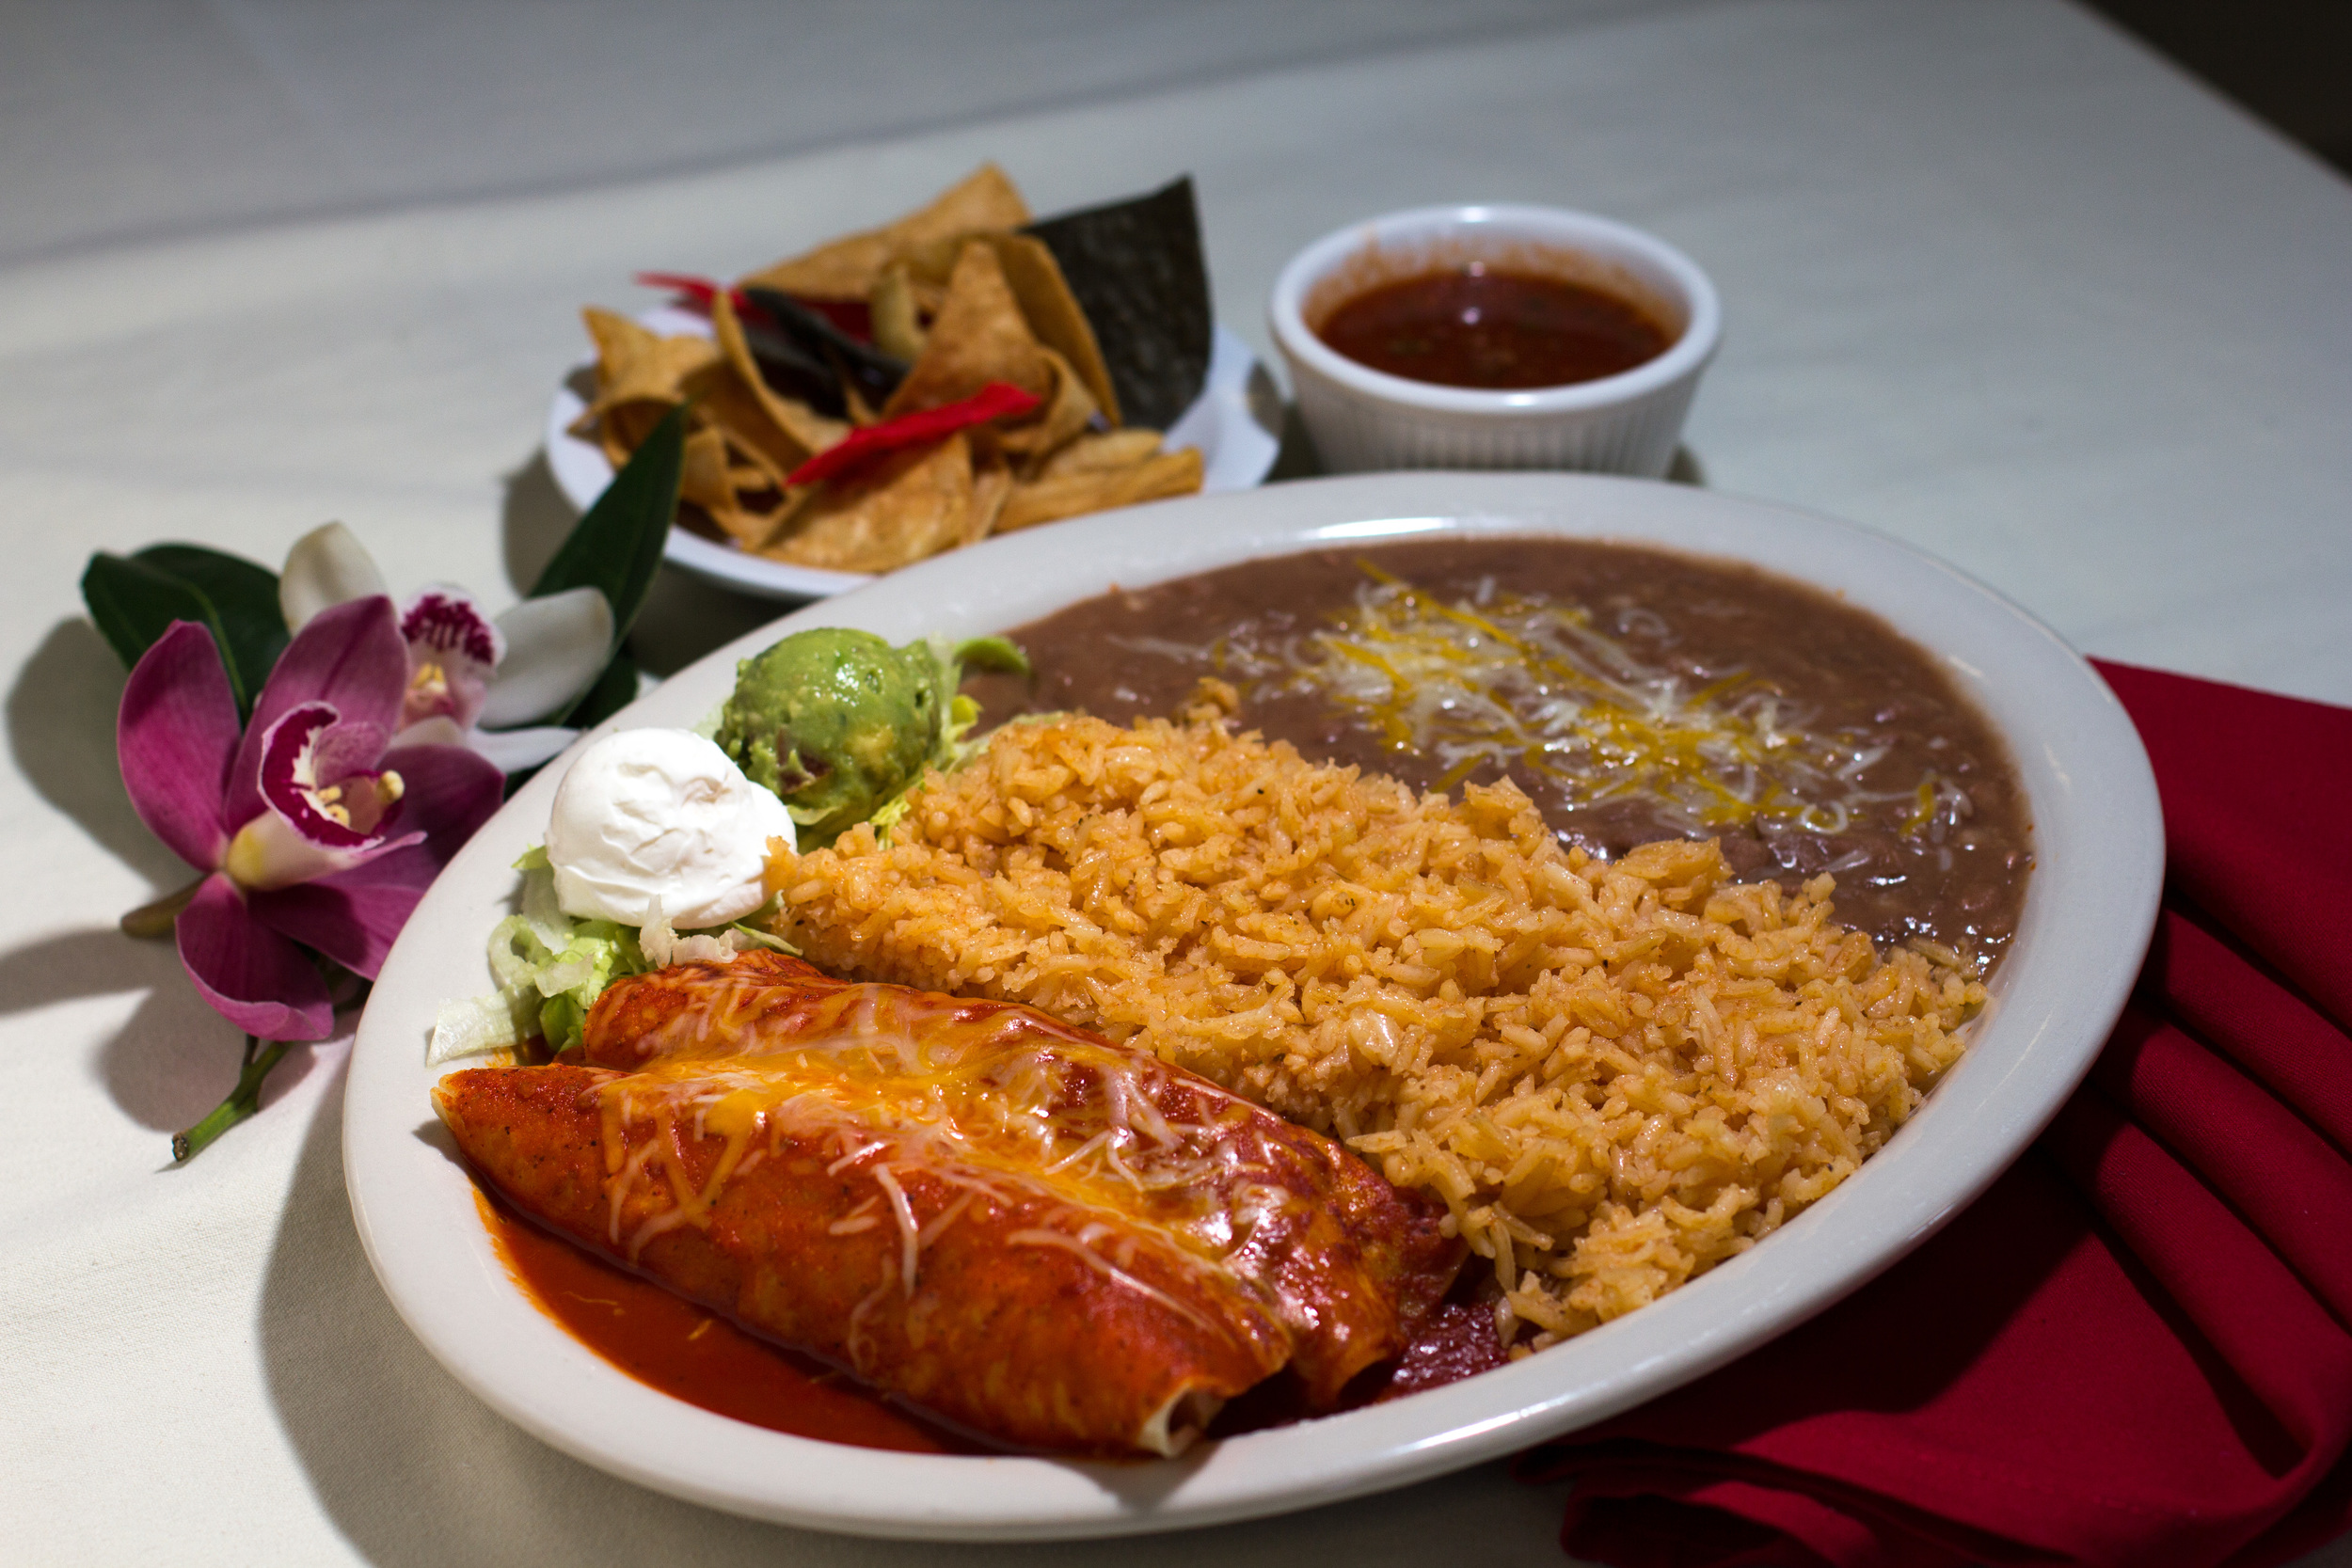 Enchiladas Mexicanas - Served in our red enchilada sauce